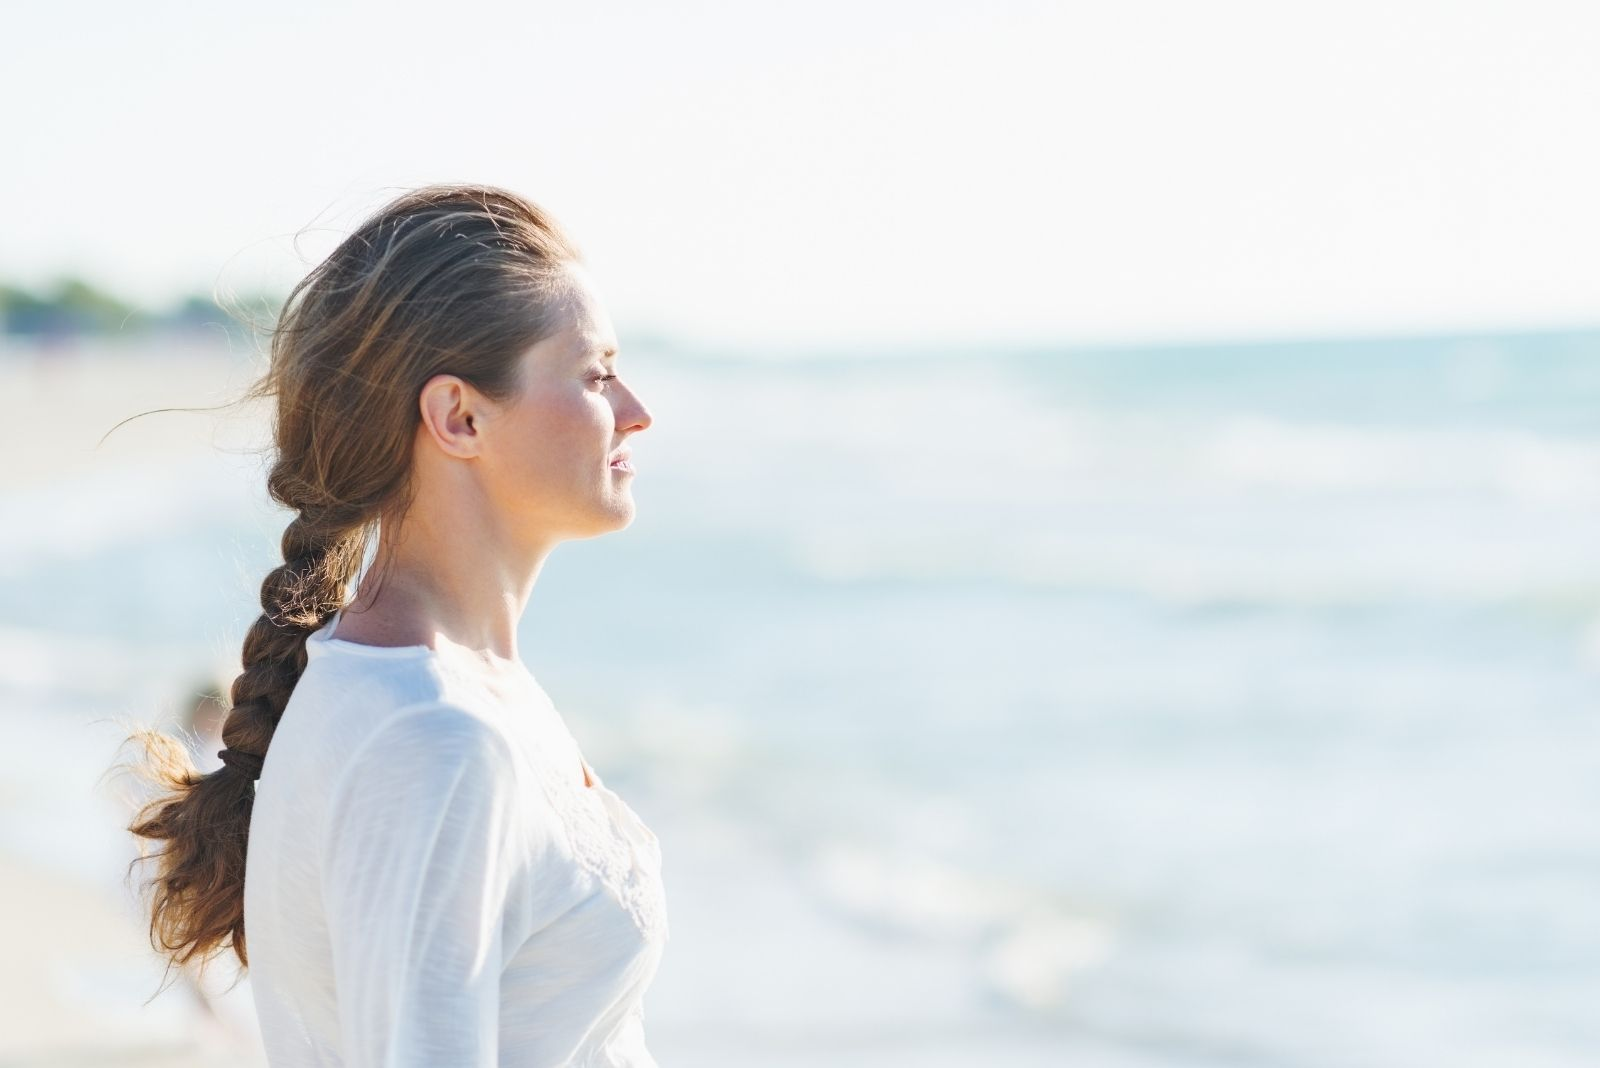 relaxed woman standing and facing the calm blue sea